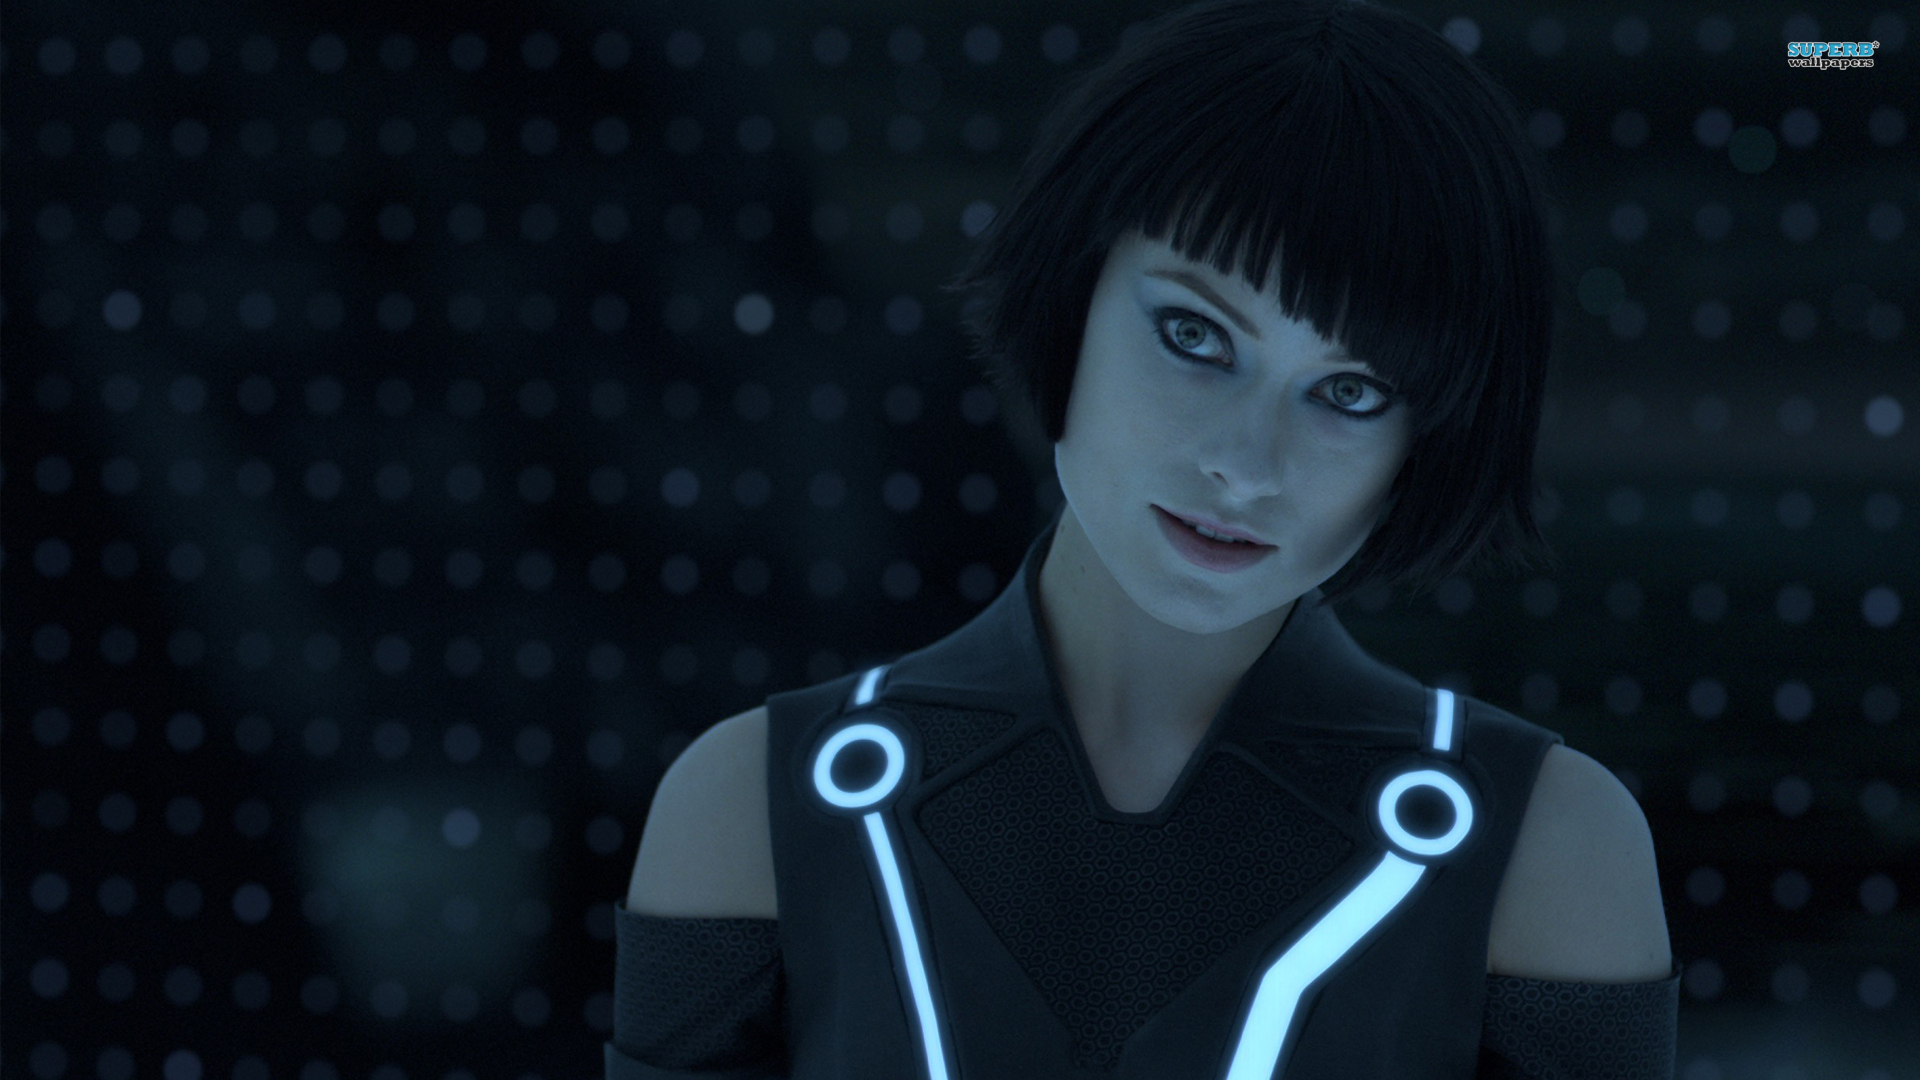 tron wallpapers archives page 2 of 5 hd desktop